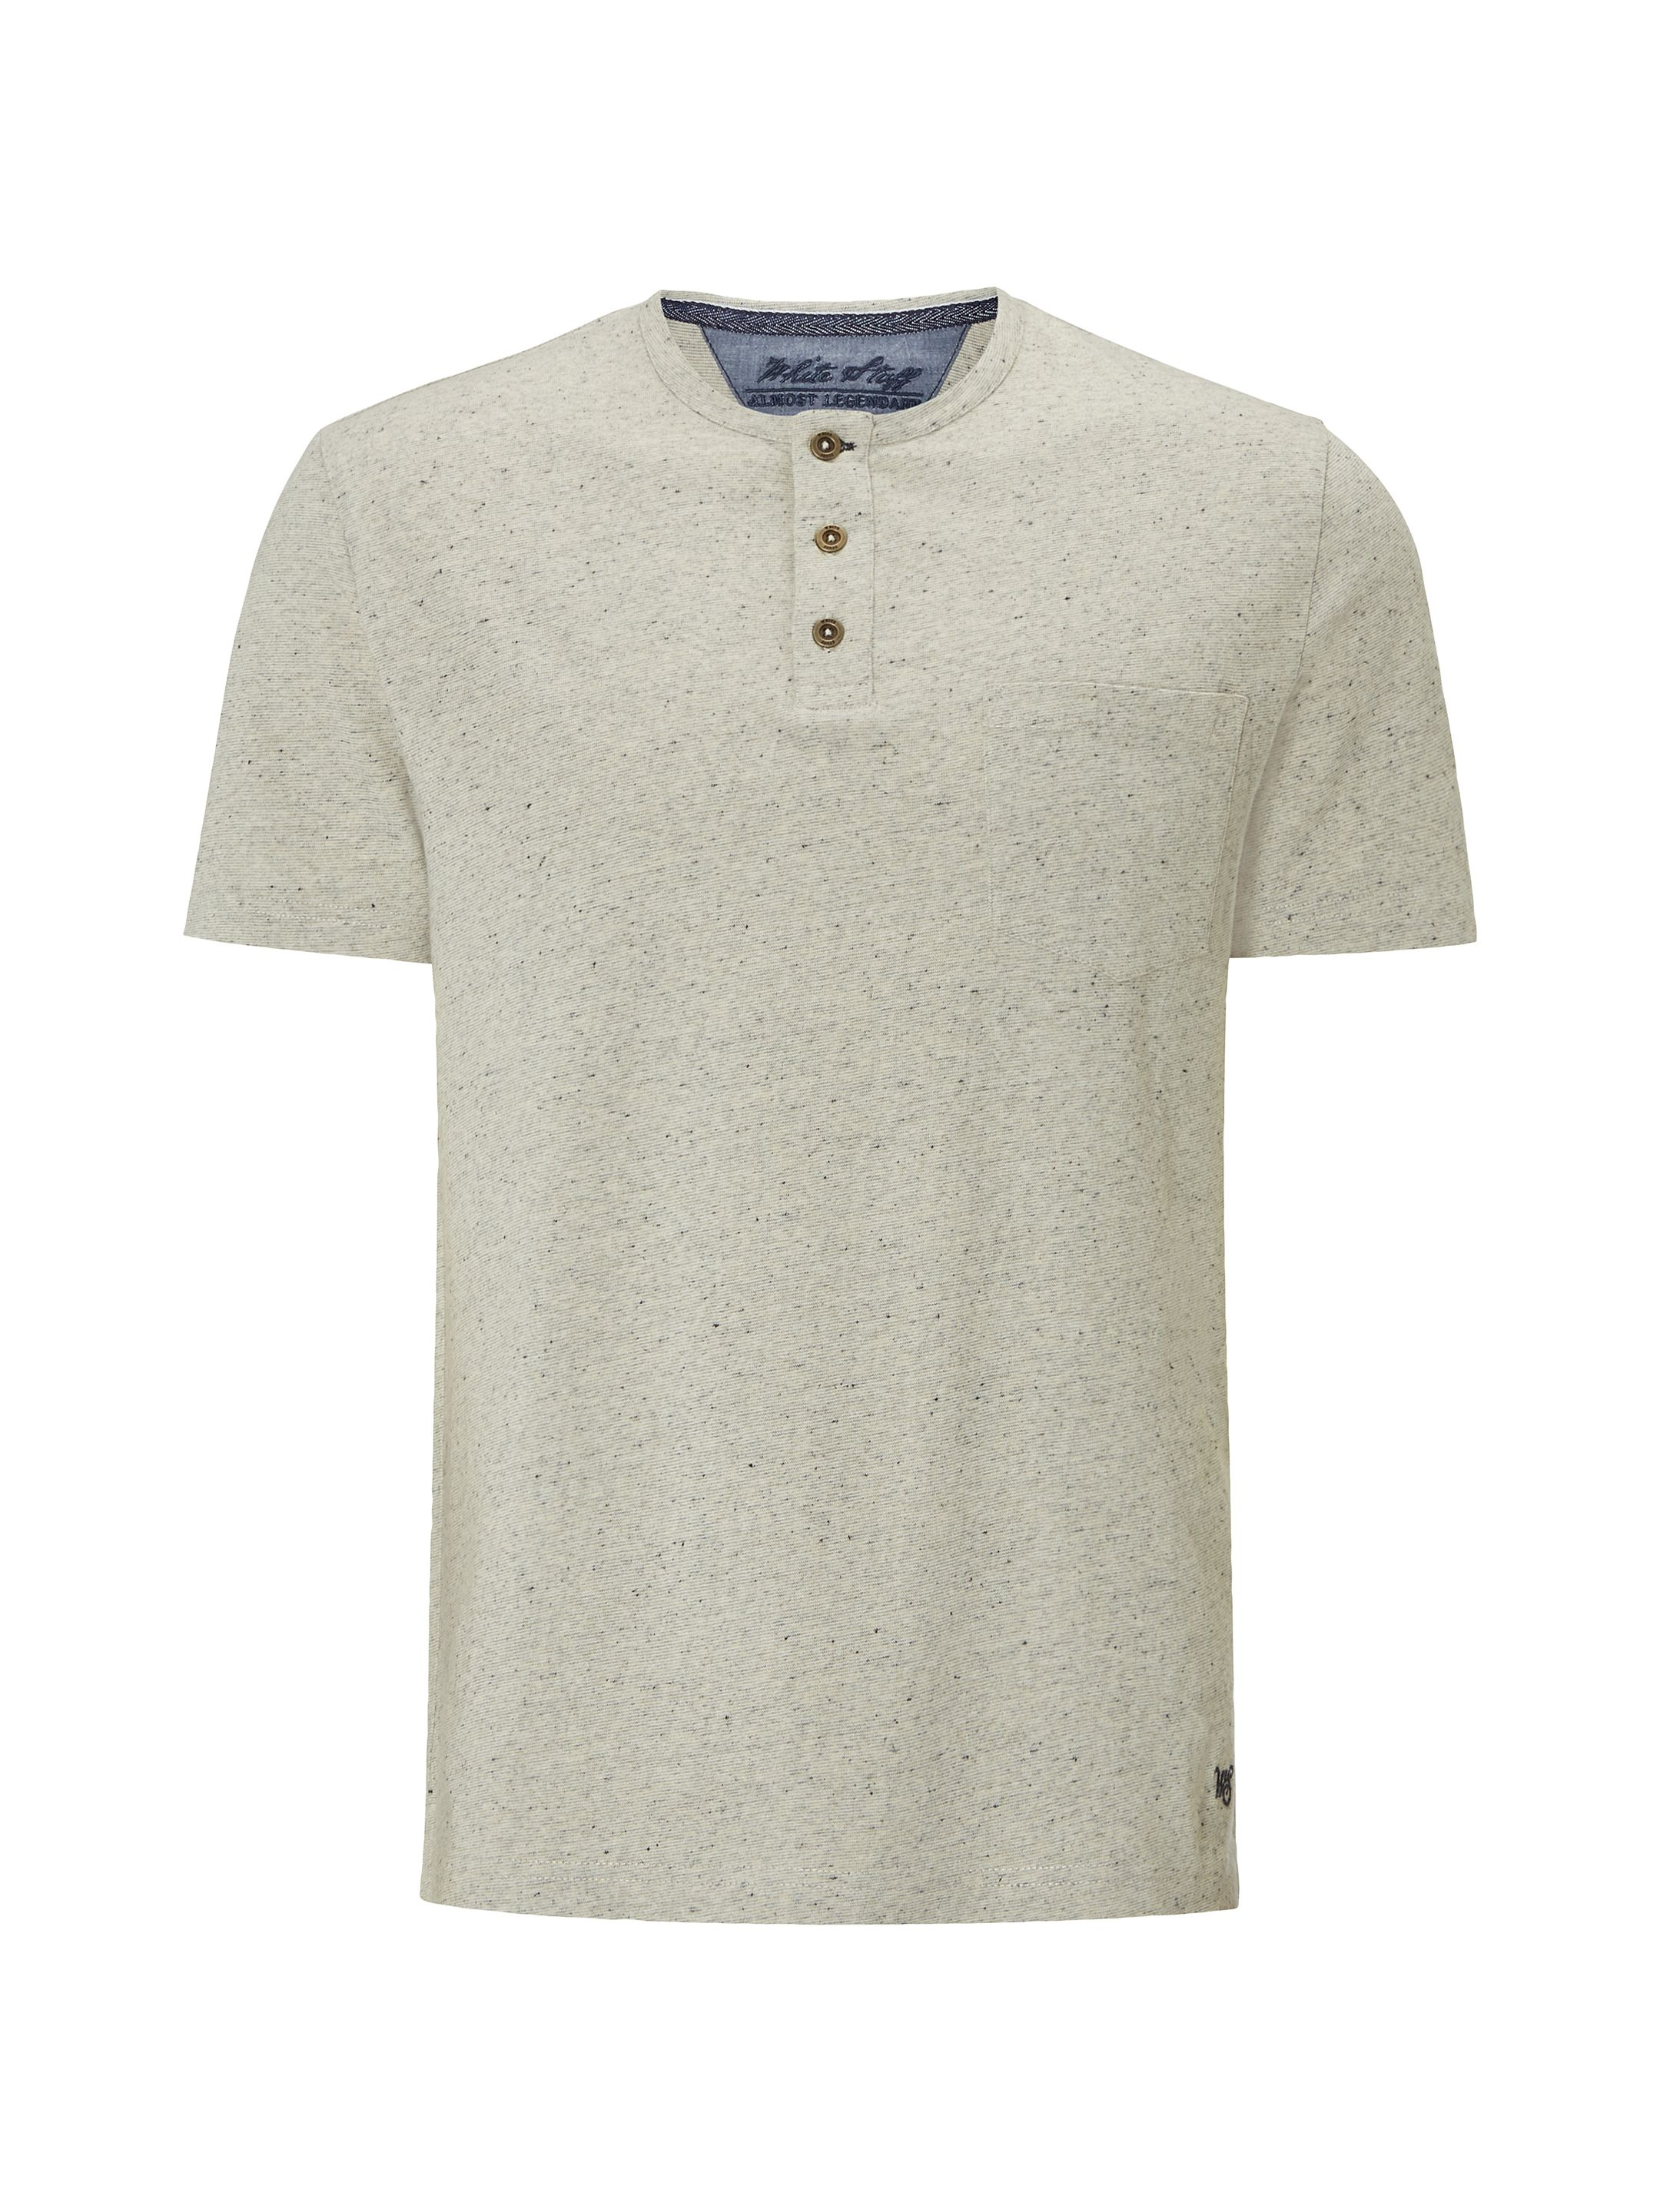 Men's White Stuff Global Henley Short Sleeve Tee, Oatmeal